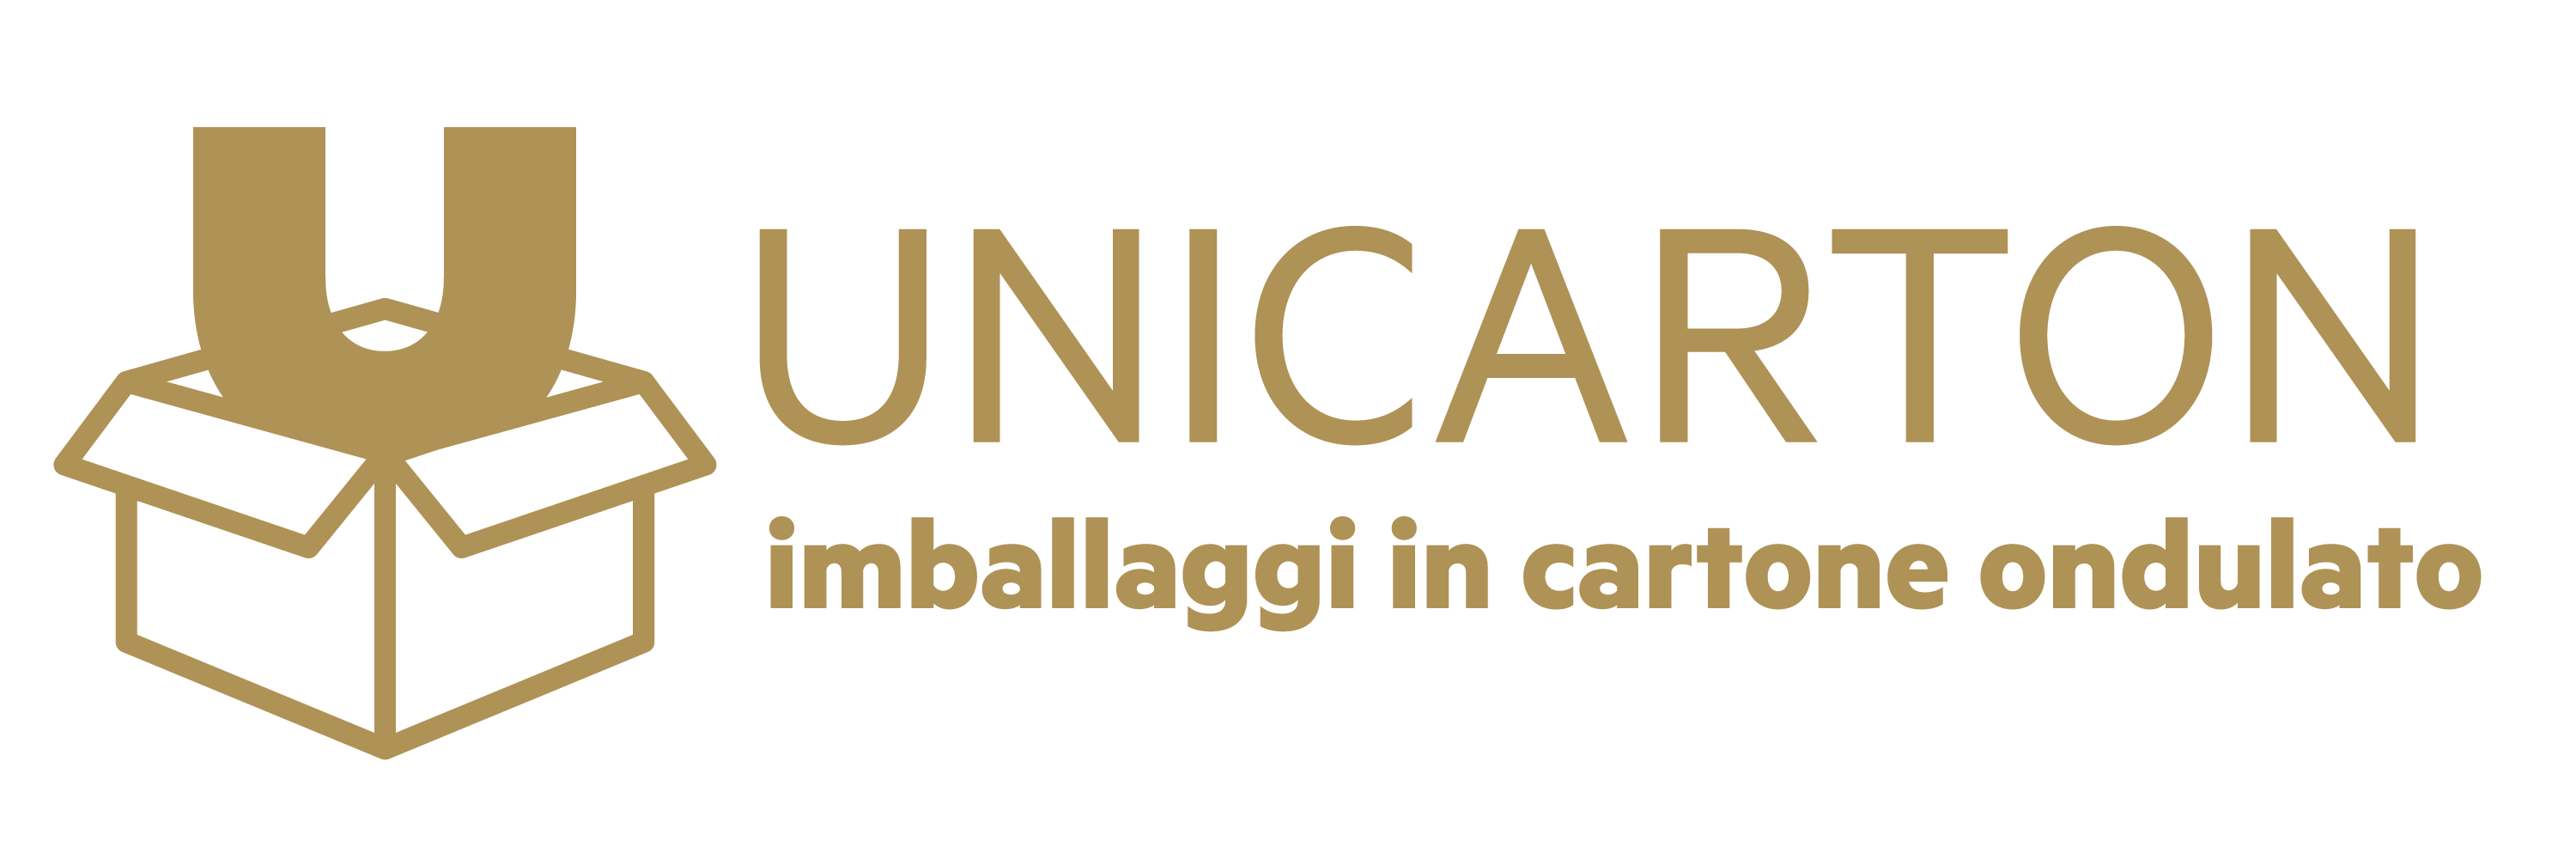 Unicarton.it